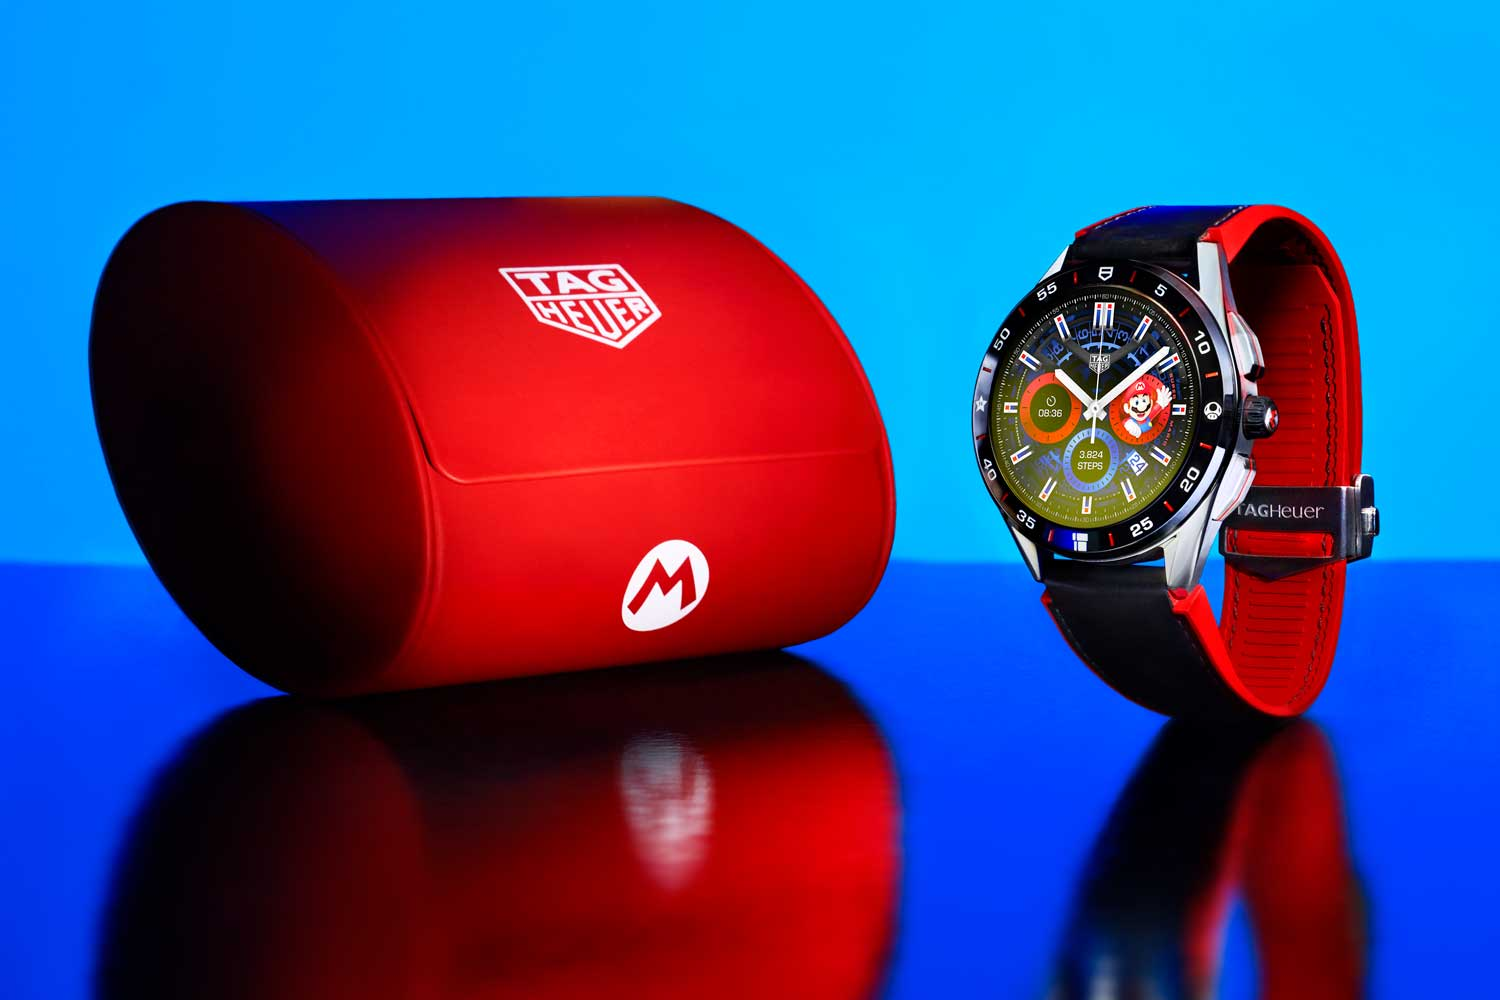 The TAG Heuer Connected x Super Mario Limited Edition is presented in a packaging designed exclusively for this collaboration. It also comes with a travel case in Super Mario red.